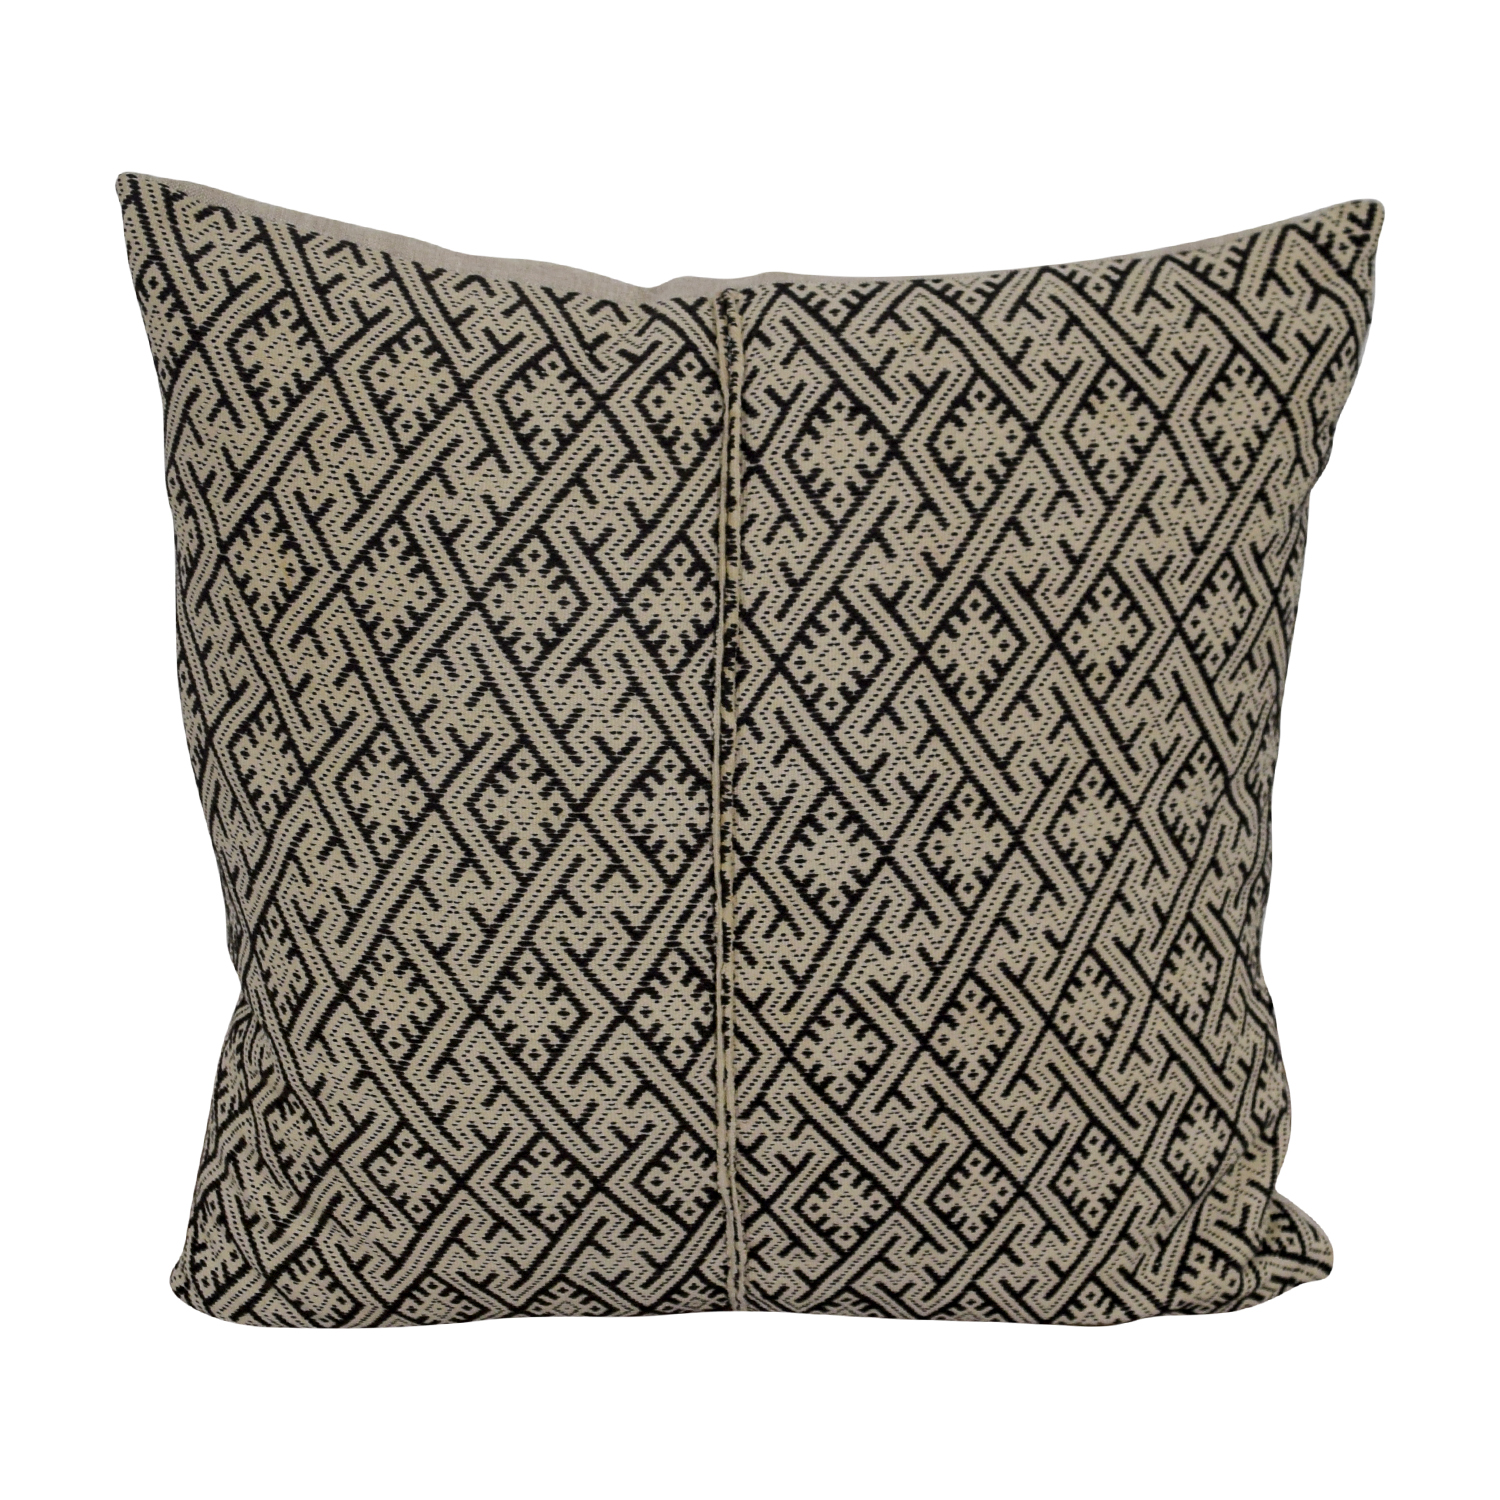 buy Etsy Vintage Beige and Black Toss Pillow Etsy Decorative Accents